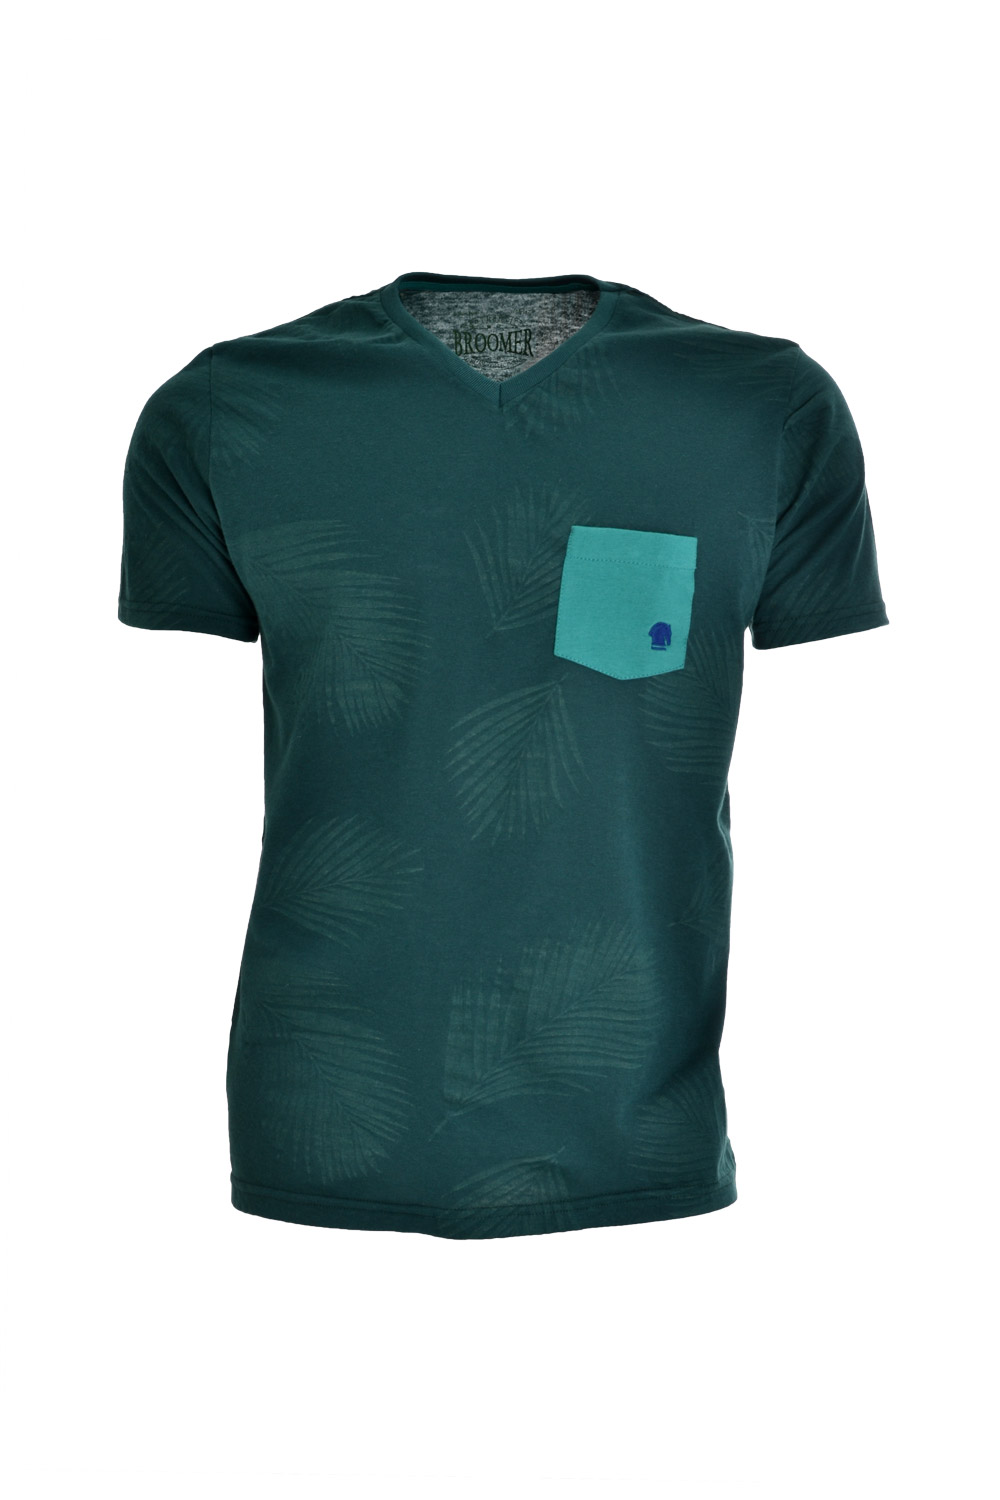 CAMISETA MC BLUES SUPER SLIM POLIALGODAO GOLA V ESTAMPA VERDE ESCURO